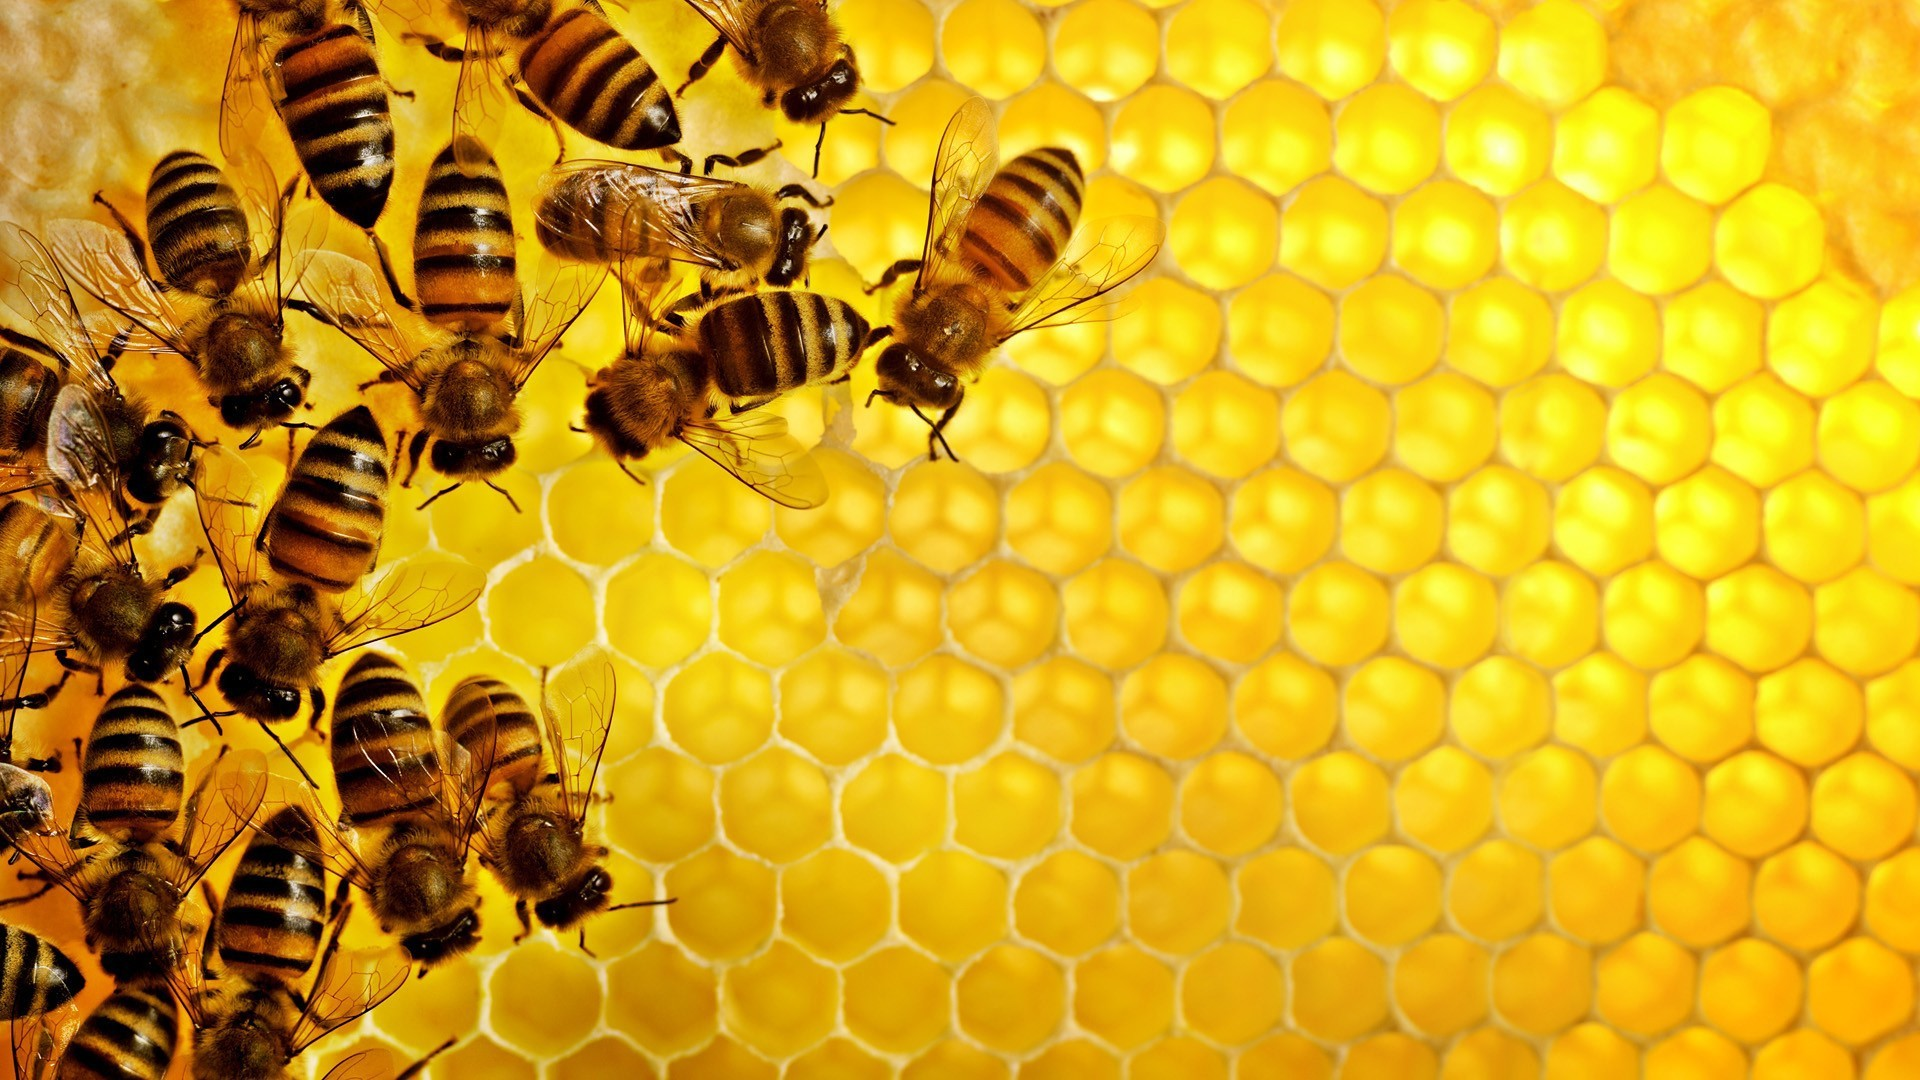 1920x1080-px-bees-geometry-hexagon-hive-